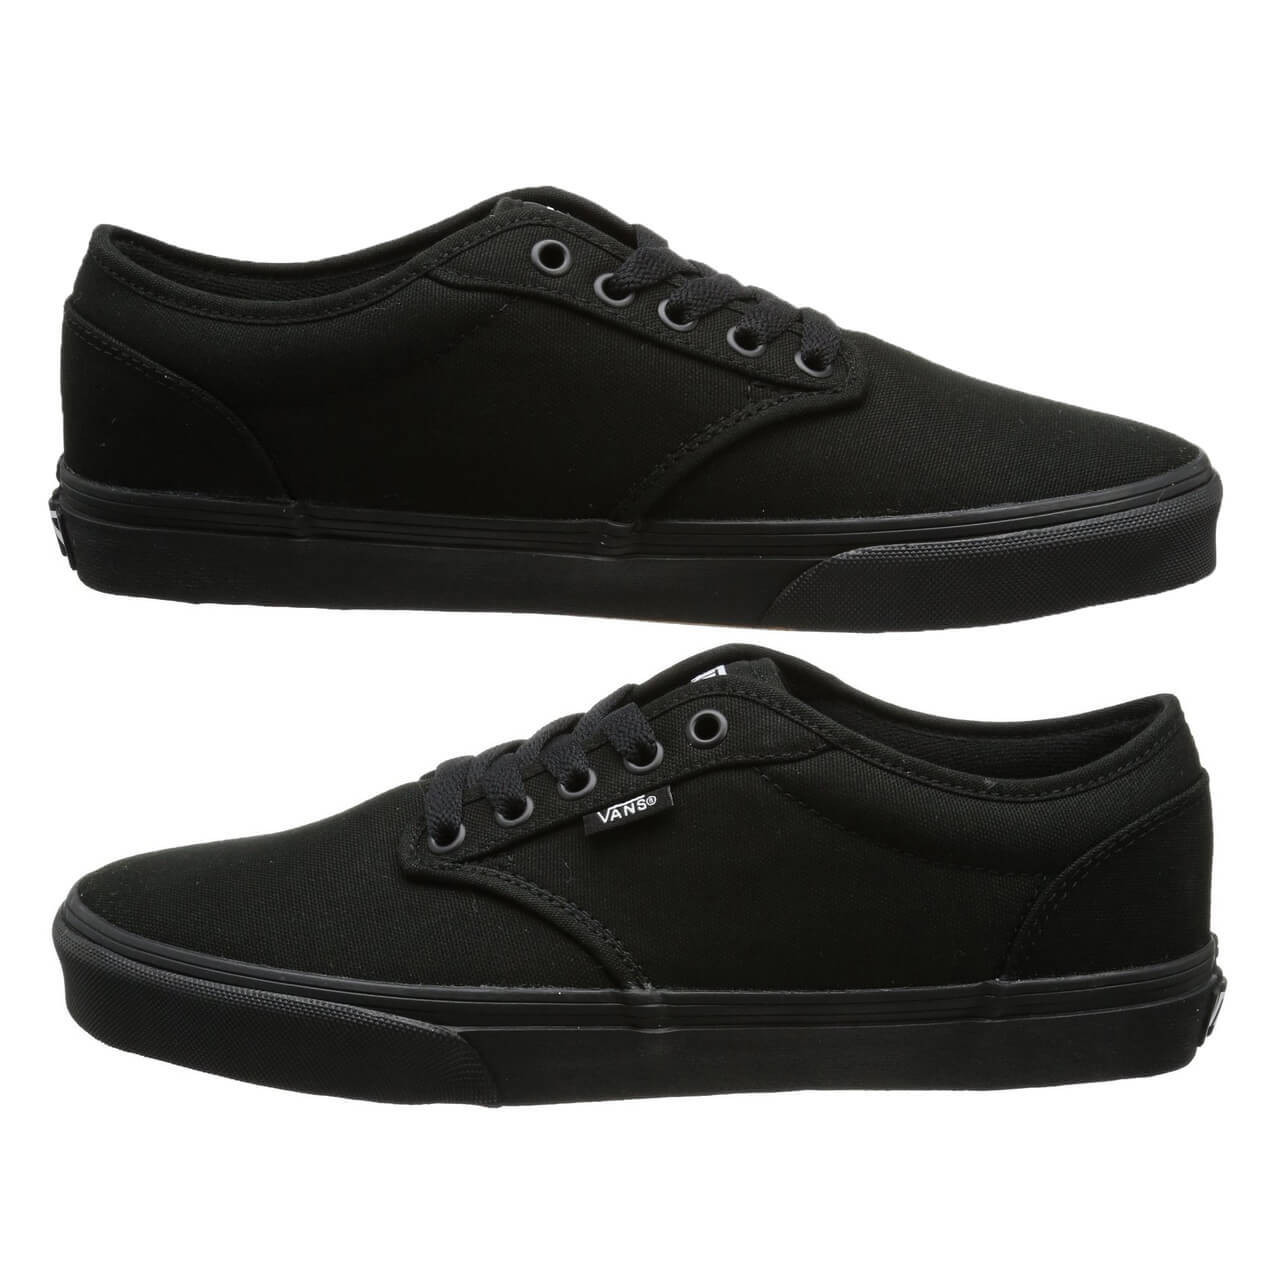 25b3f0a2c45 Vans Atwood Canvas Trainers Black Image VANS Atwood Canvas Trainers Black  ...